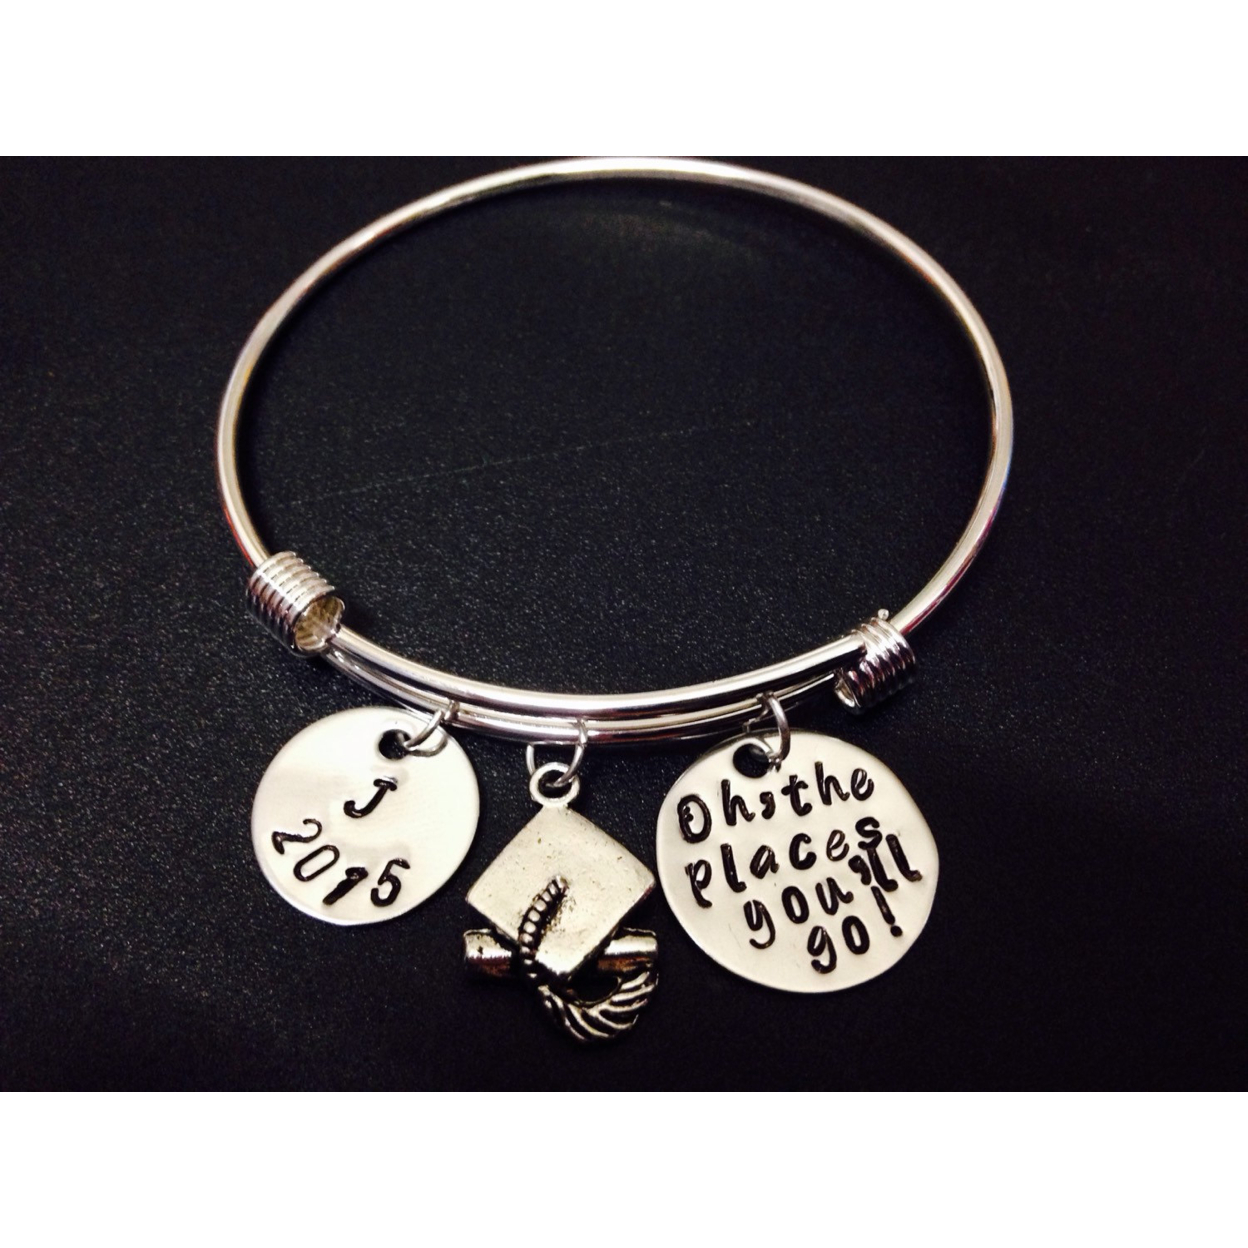 Personalized Oh the Places You'll Go Graduation Bracelet - Hand Stamped Jewelry - Senior Graduation Gift 2015 -Grad Bangle - stainless steel 555567457aaaaa4f0e8b7320